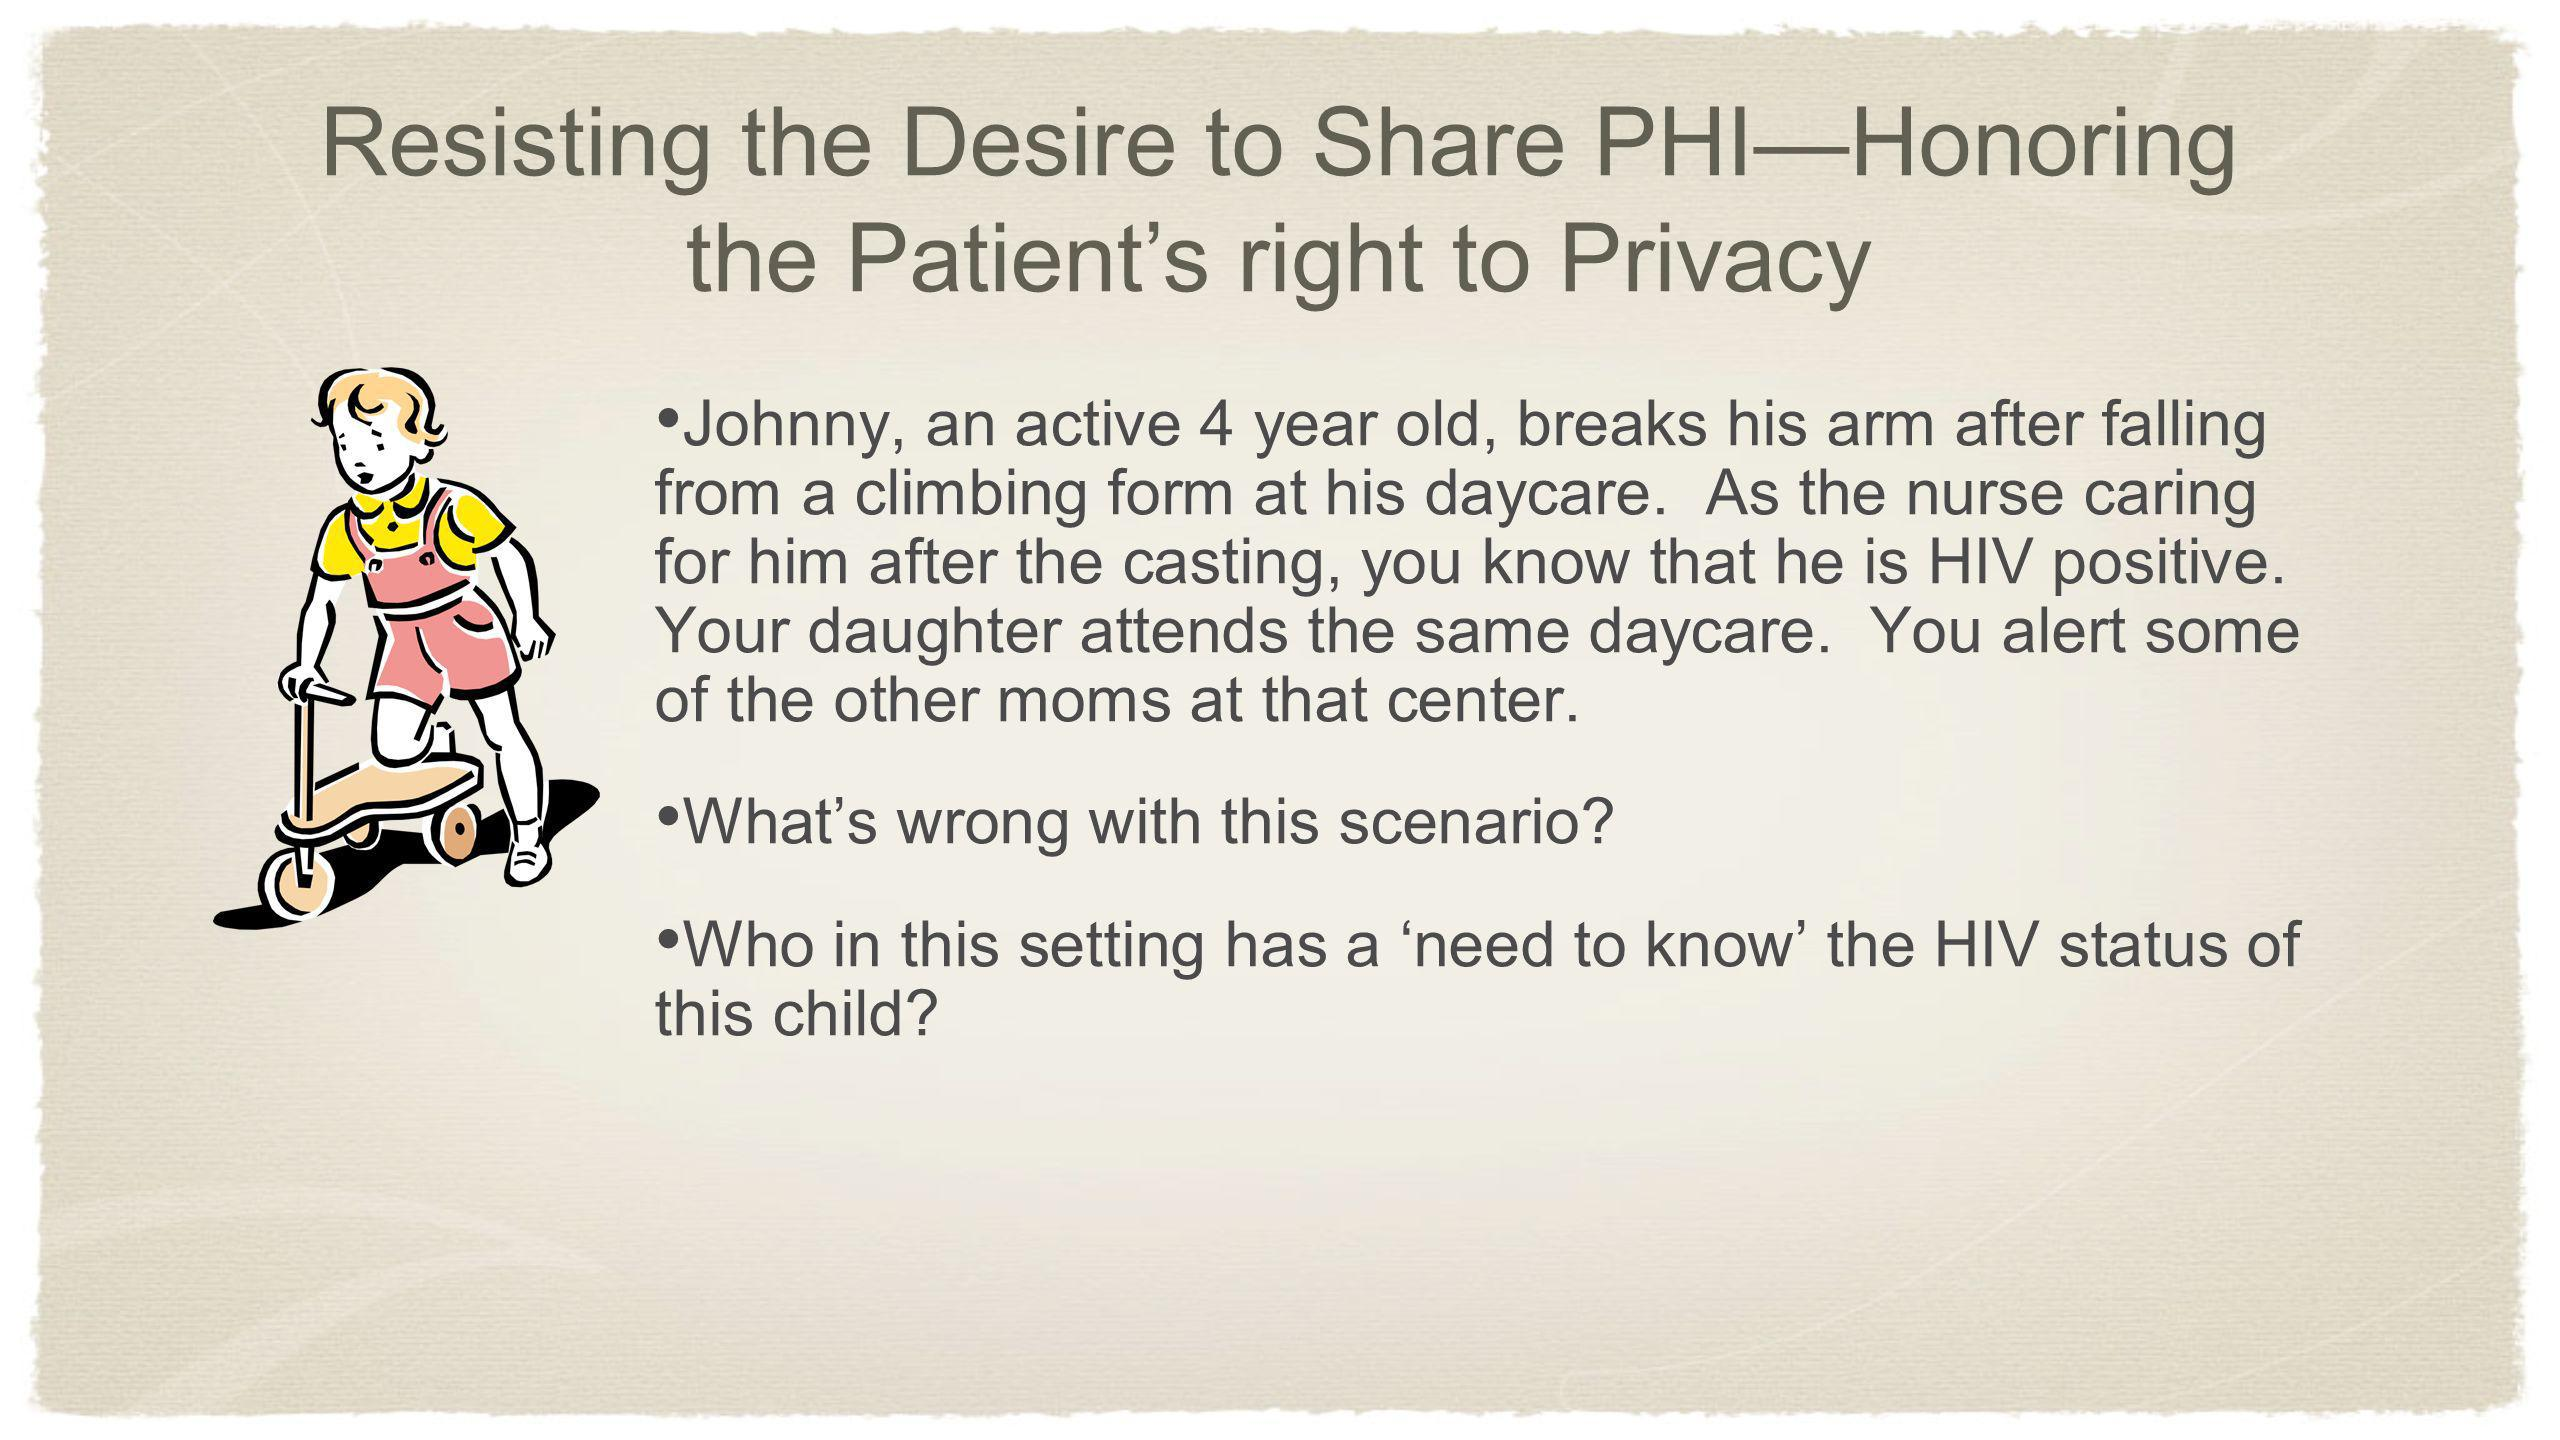 Resisting the Desire to Share PHI—Honoring the Patient's right to Privacy